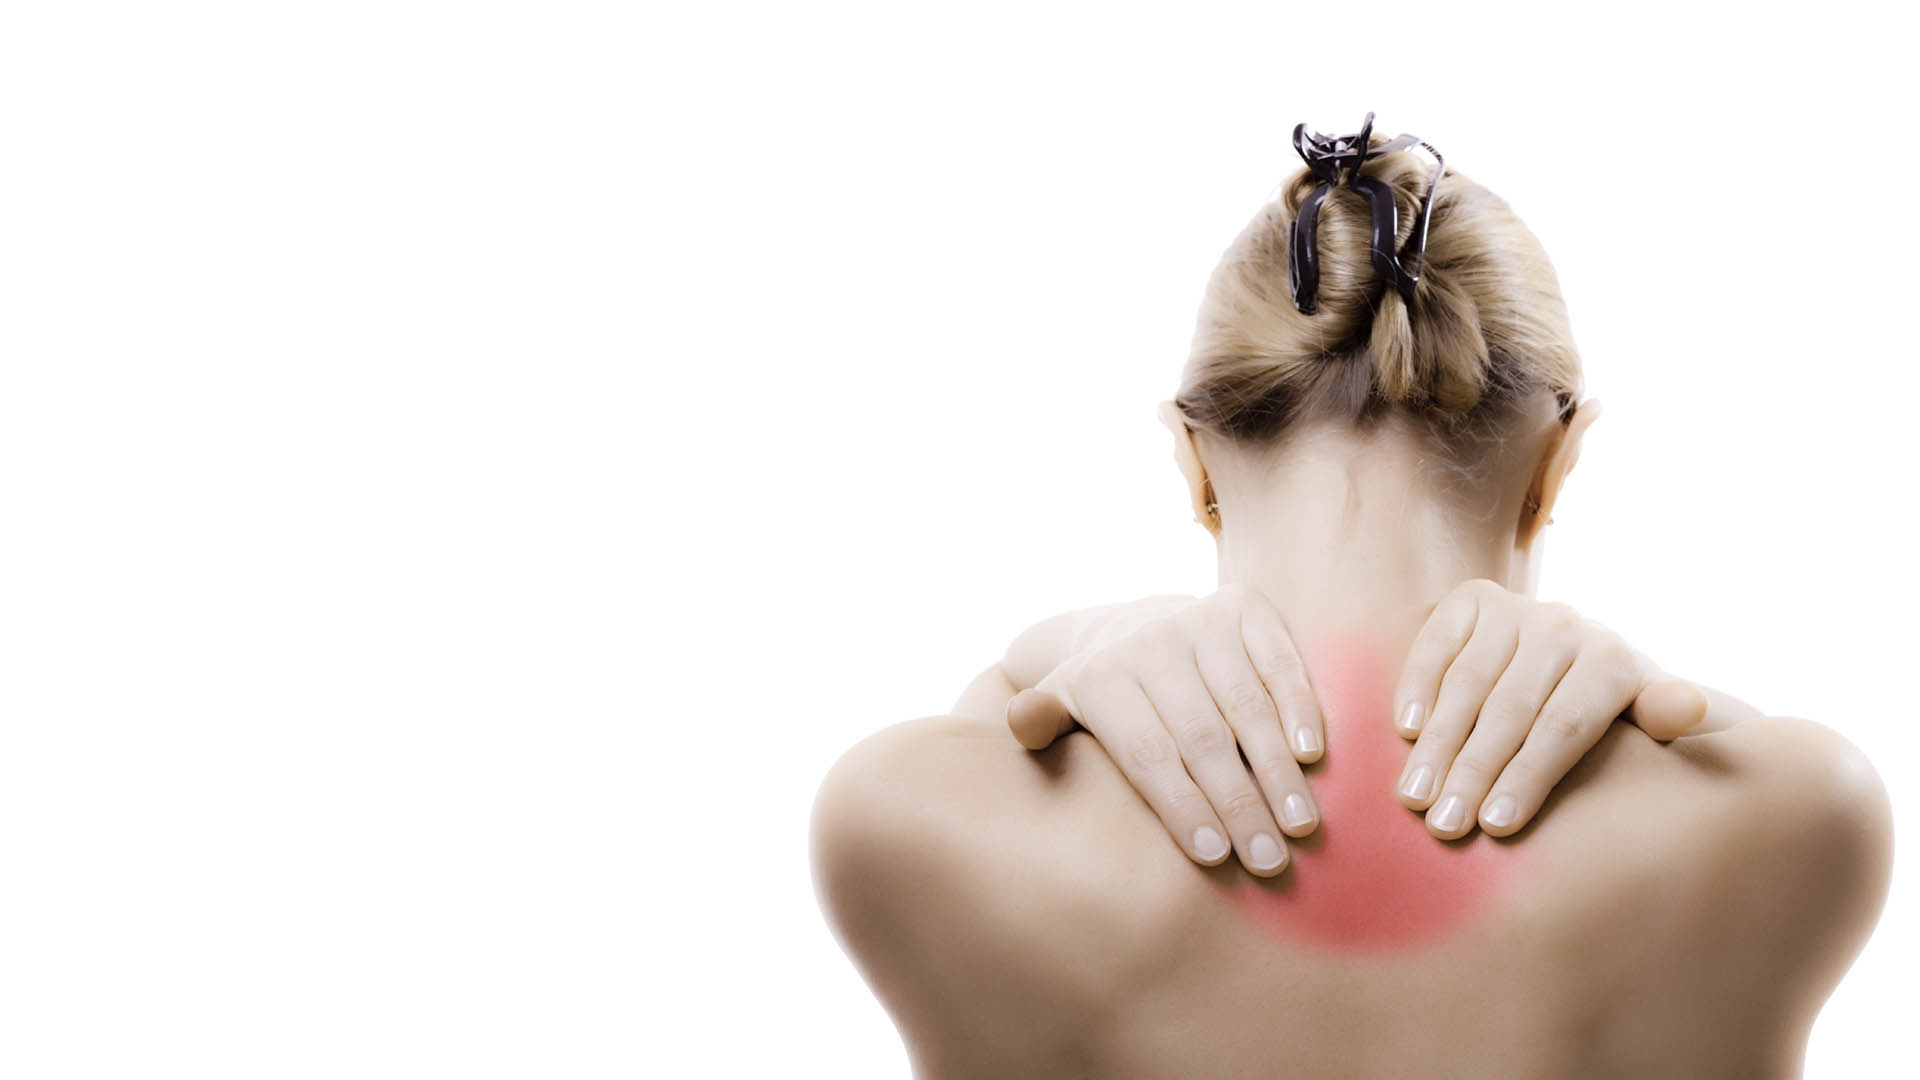 physiotherapy-leeds-homepage-slider-image-right